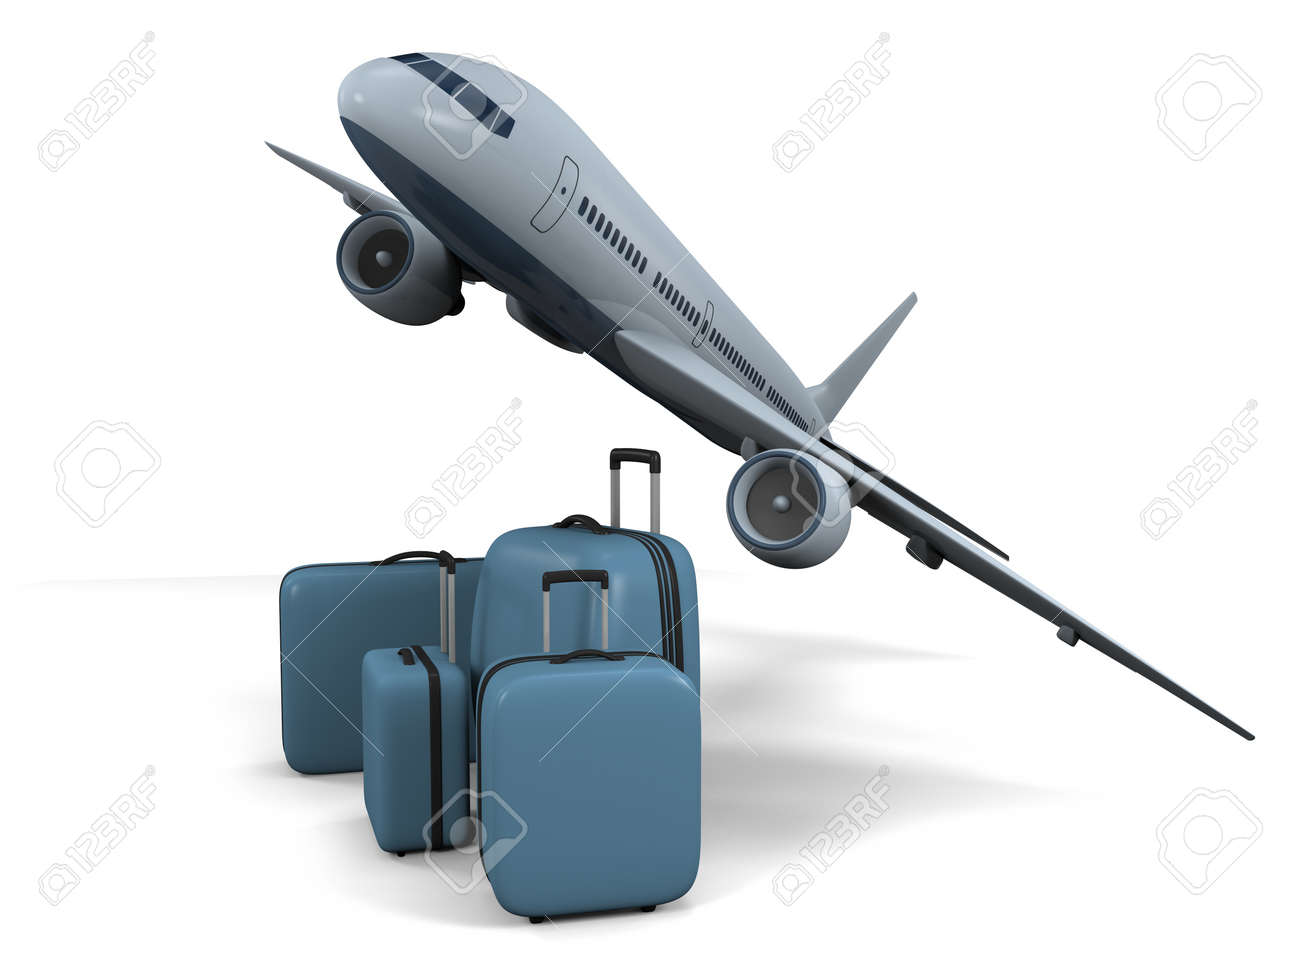 3D model of flying passenger aircraft with luggage isolated on